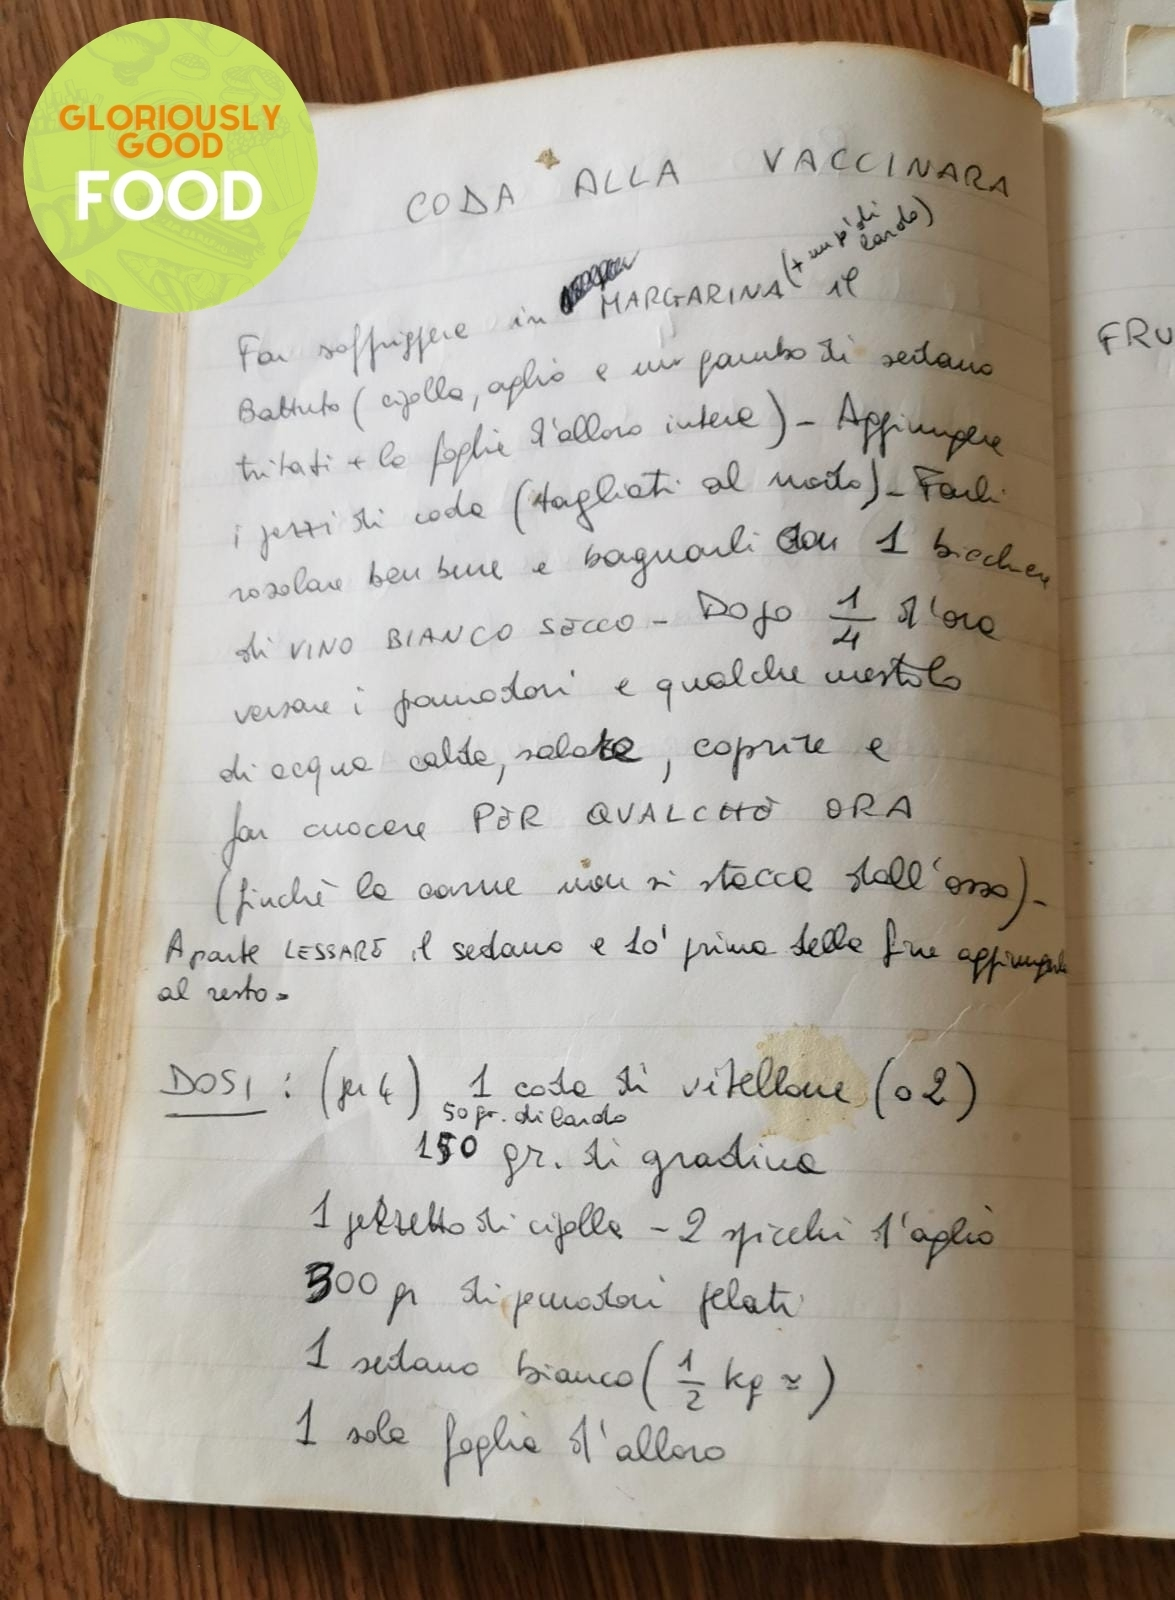 Hand-written 'coda alla vaccinara' recipe, written down by my auntie (zia Emilia) many years ago as she was about to get married and leave home.